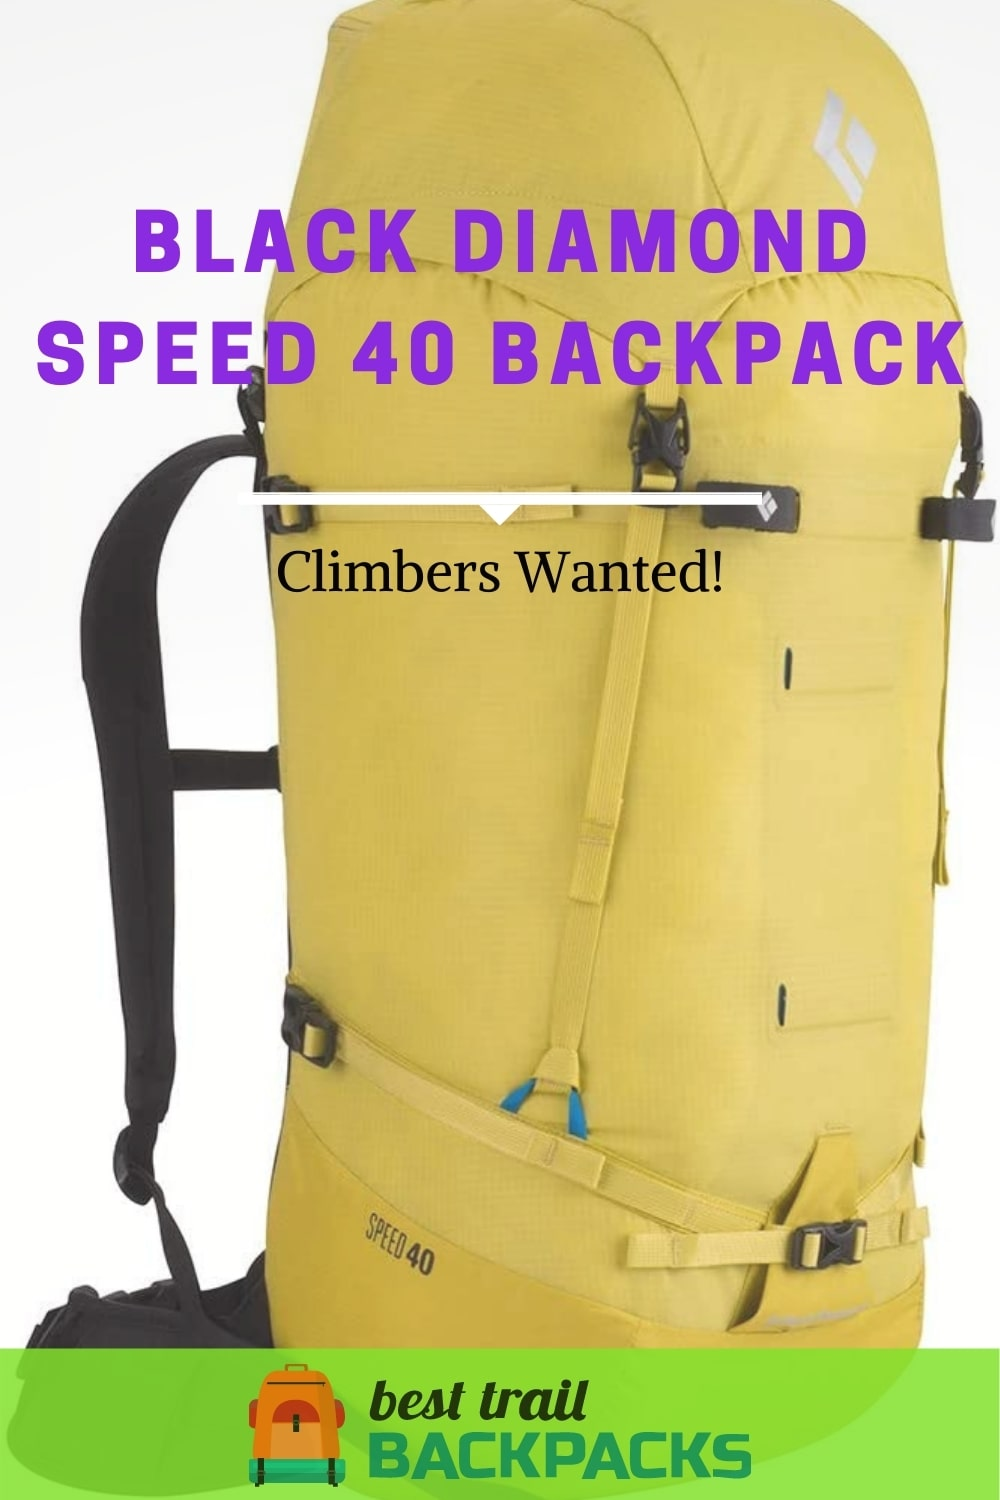 Black Diamond Speed 40 Backpack Review - Climbers Wanted